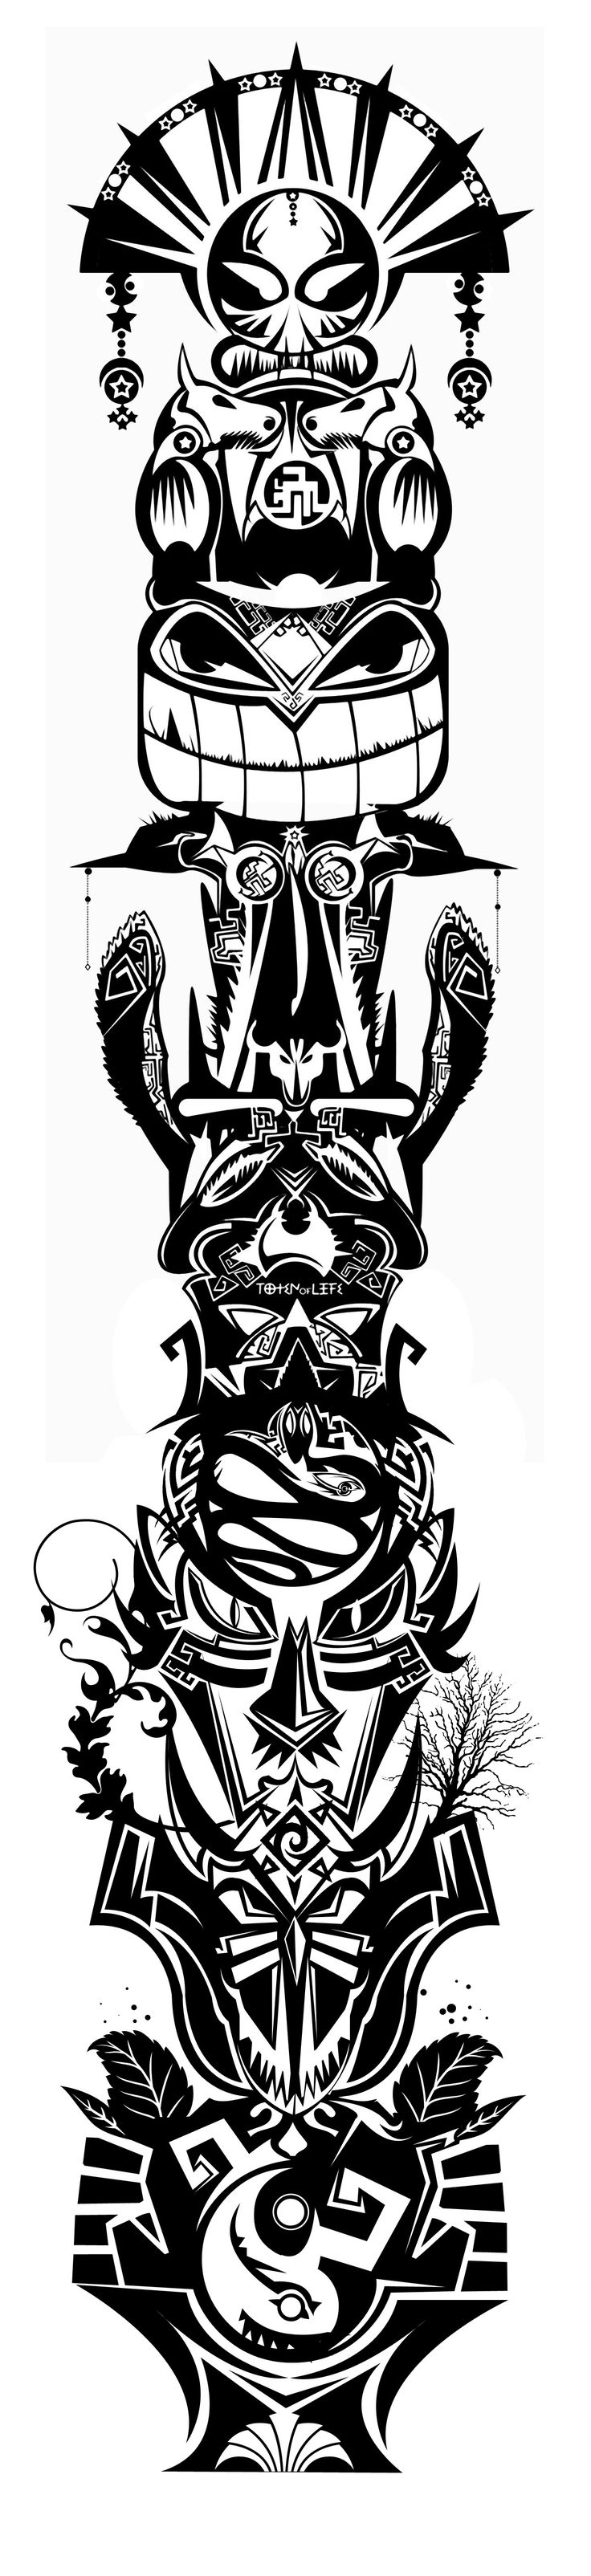 Totem Tattoo Designs | MadSCAR